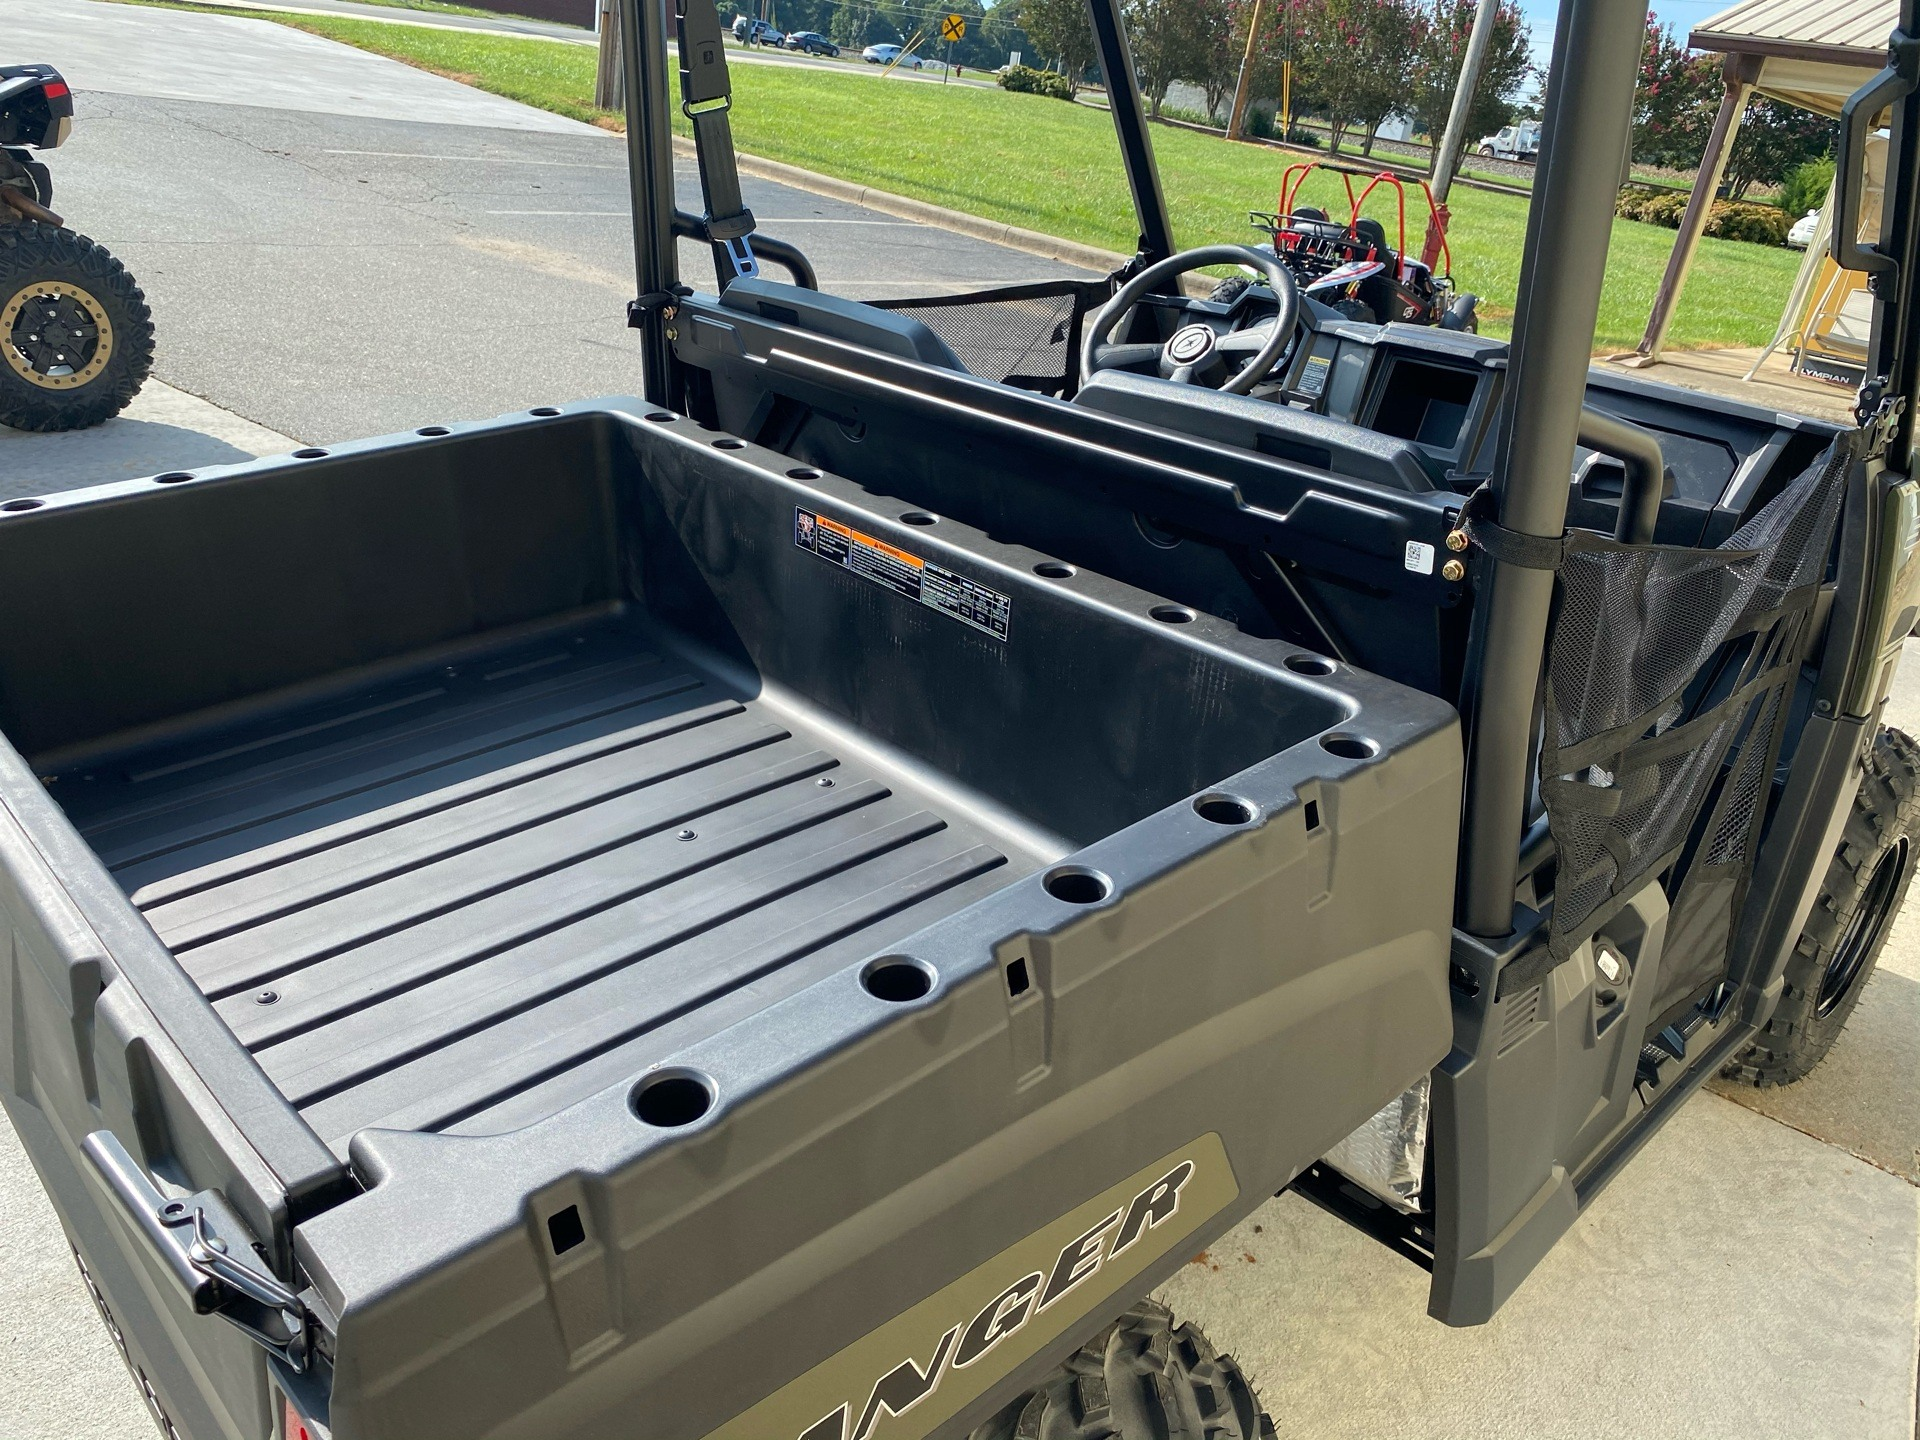 2021 Polaris Ranger 500 in Statesville, North Carolina - Photo 4